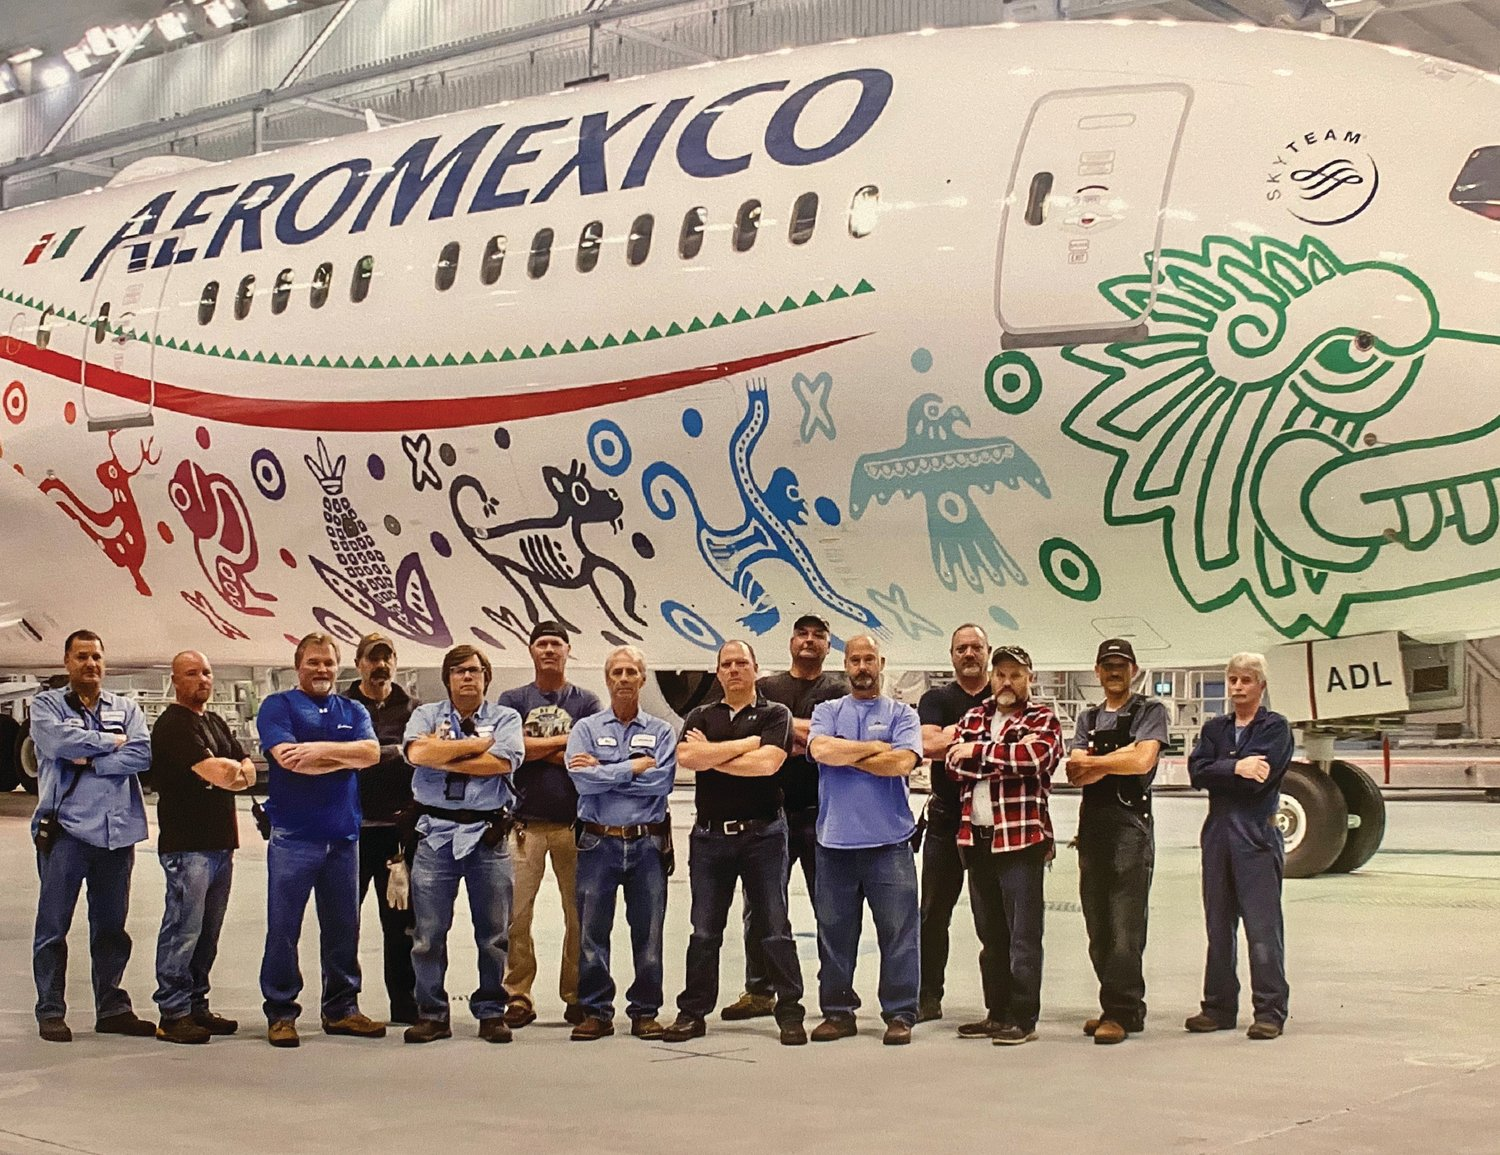 Gary Walker (eighth from left) with his Boeing teammates and an Aero Mexico 787 in the background inside the paint hangar at the Boeing plant in Everett, Wash.